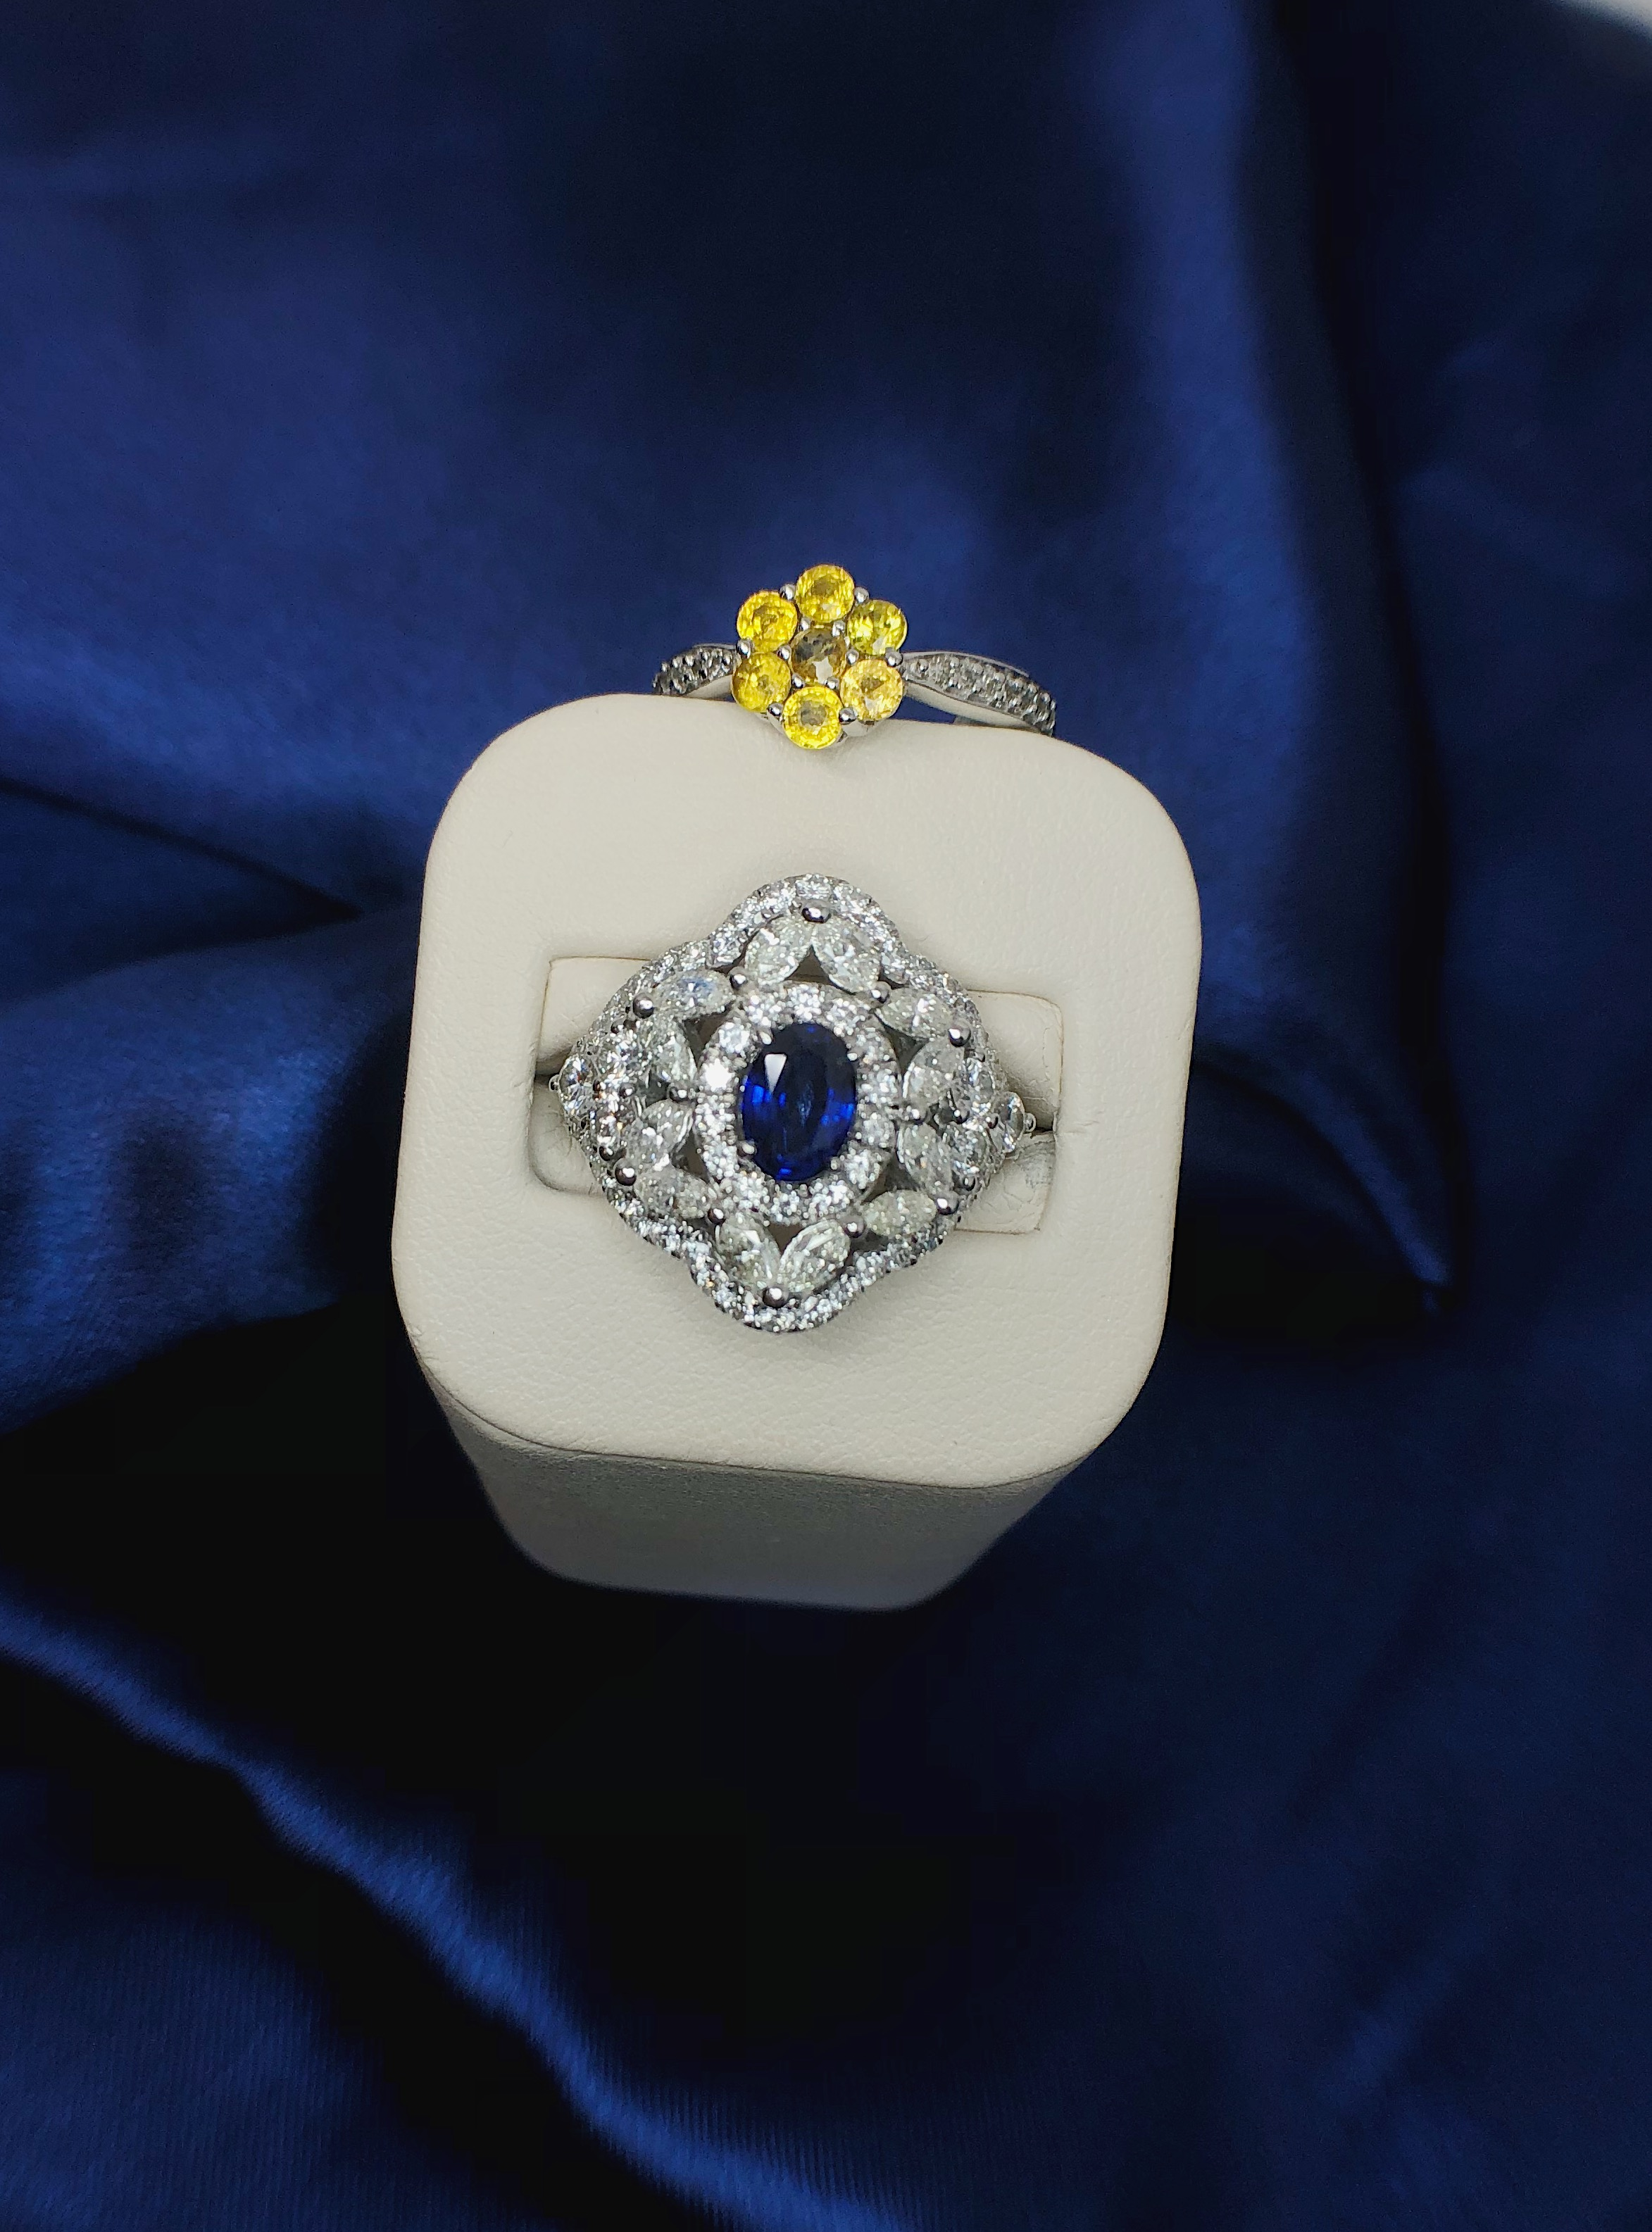 A stunning sapphire ring surrounded by diamonds… and a YELLOW sapphire ring on top!